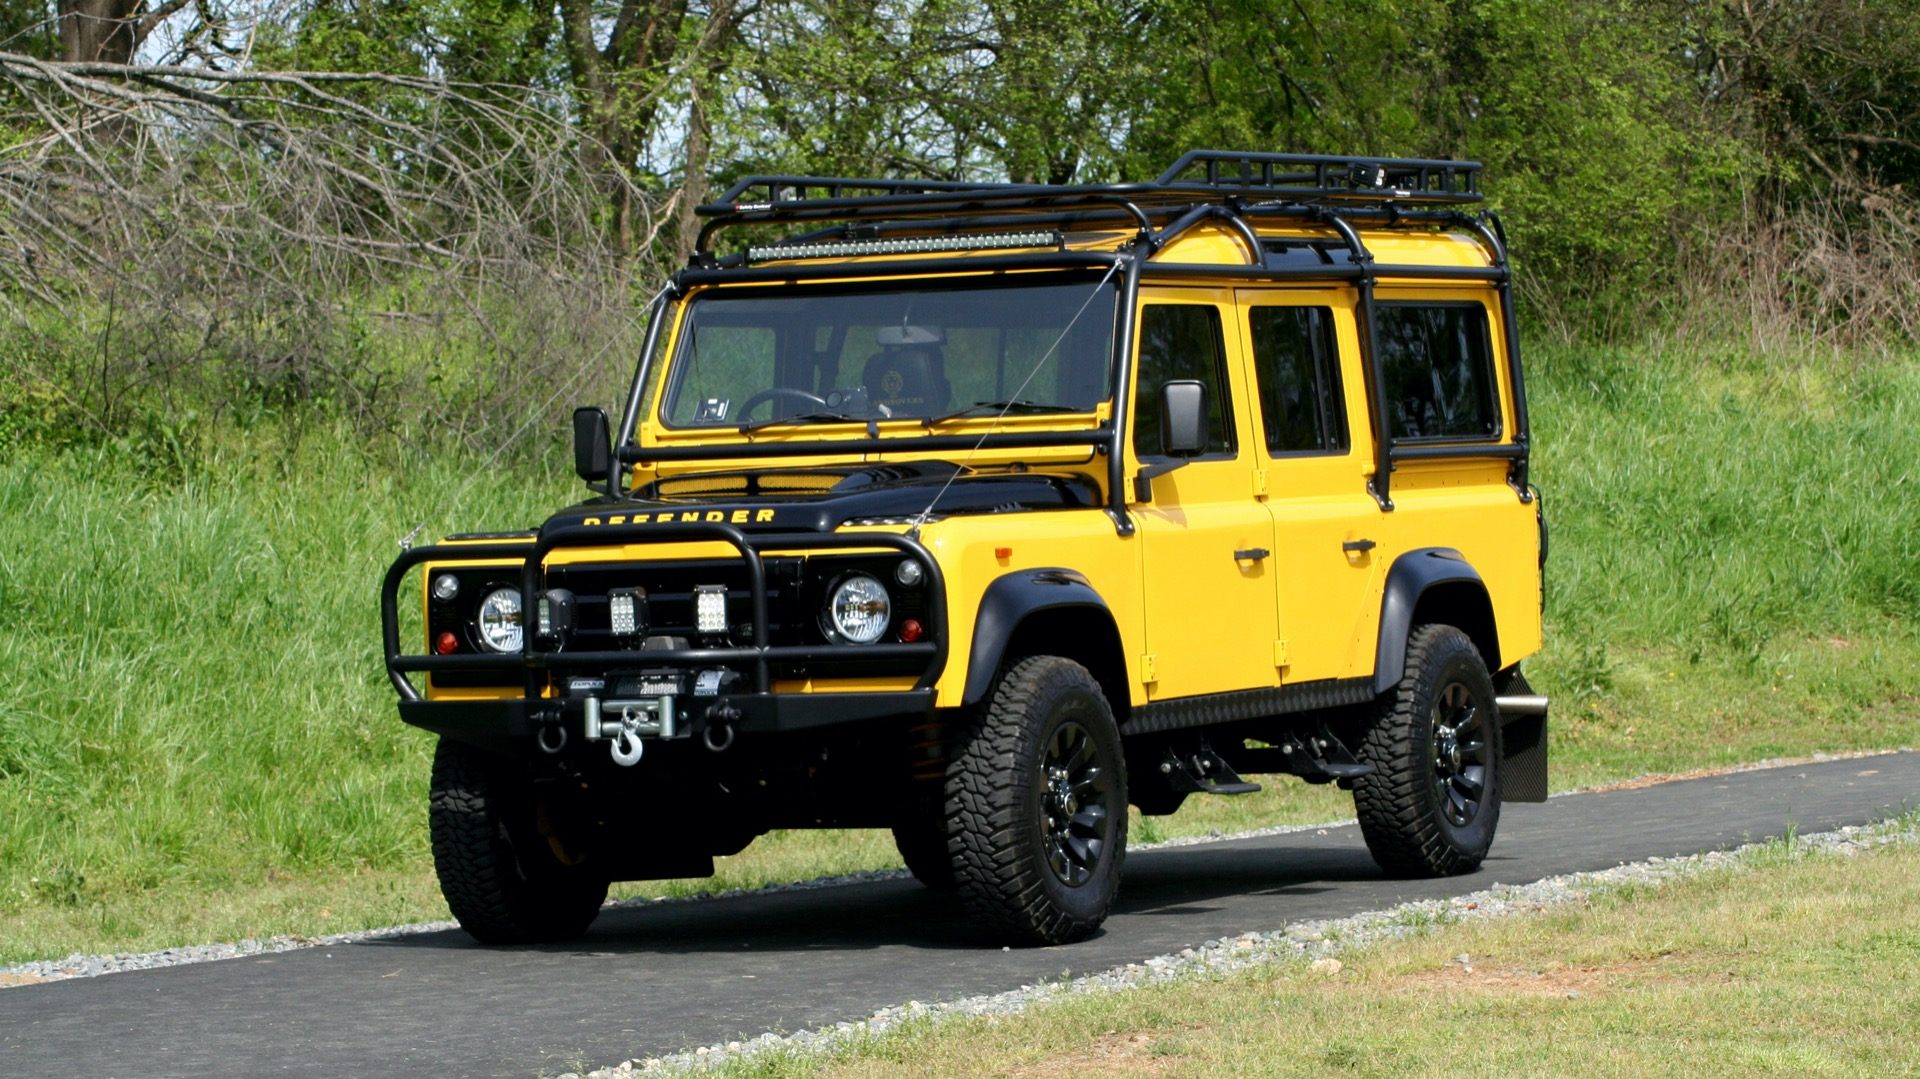 Used 1989 Land Rover Defender 110 4x4 Custom / Fully Restored / Fuel Injected V8 / 5-Spd Man for sale $60,000 at Formula Imports in Charlotte NC 28227 1